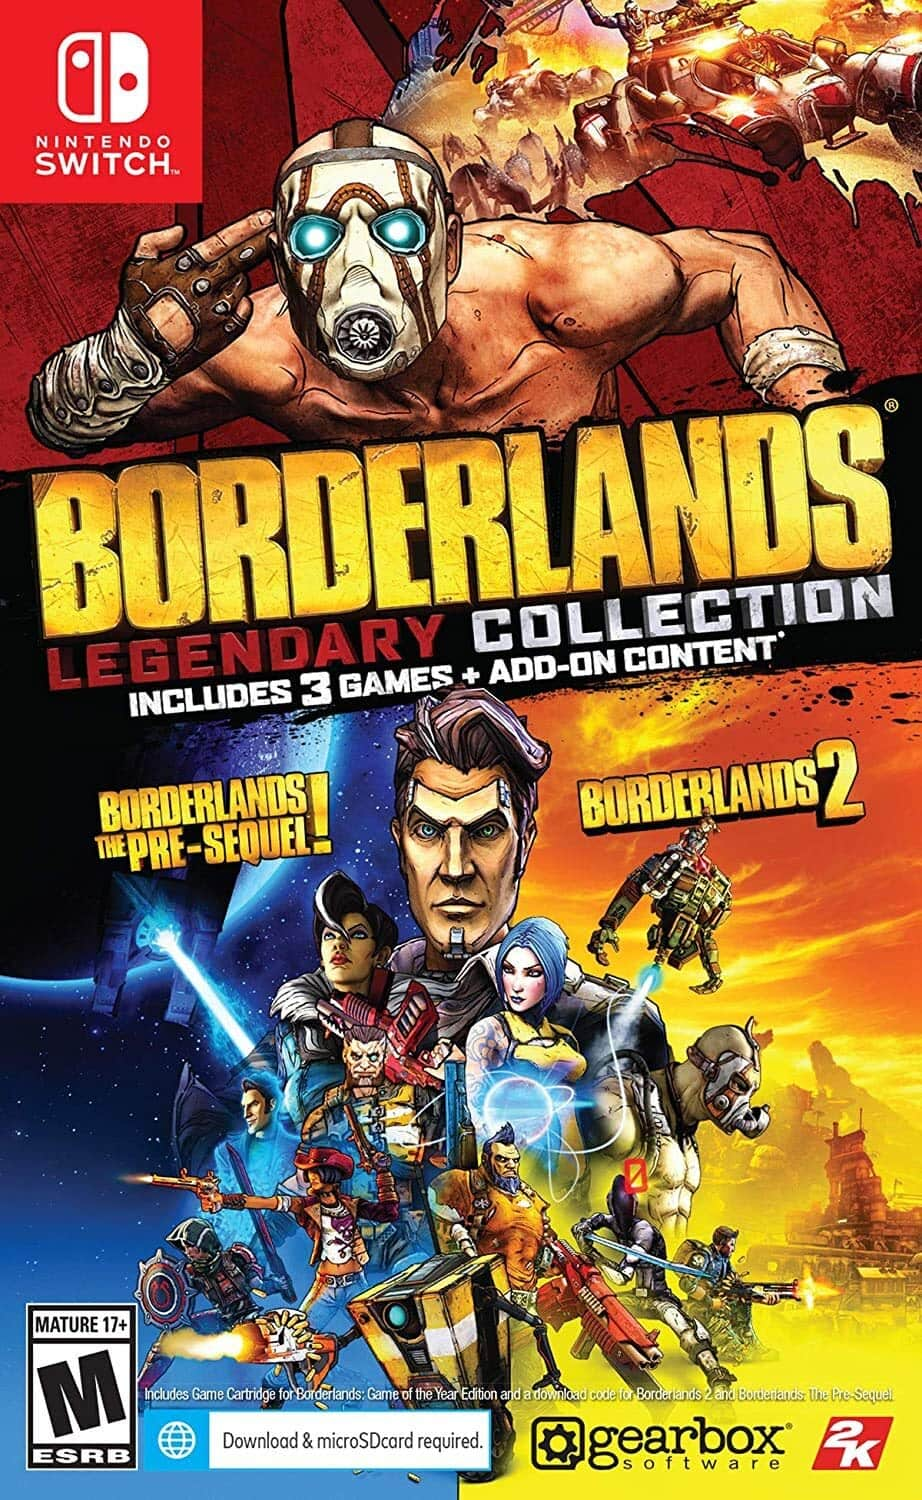 Borderlands Legendary Collection (Nintendo Switch) $29.99